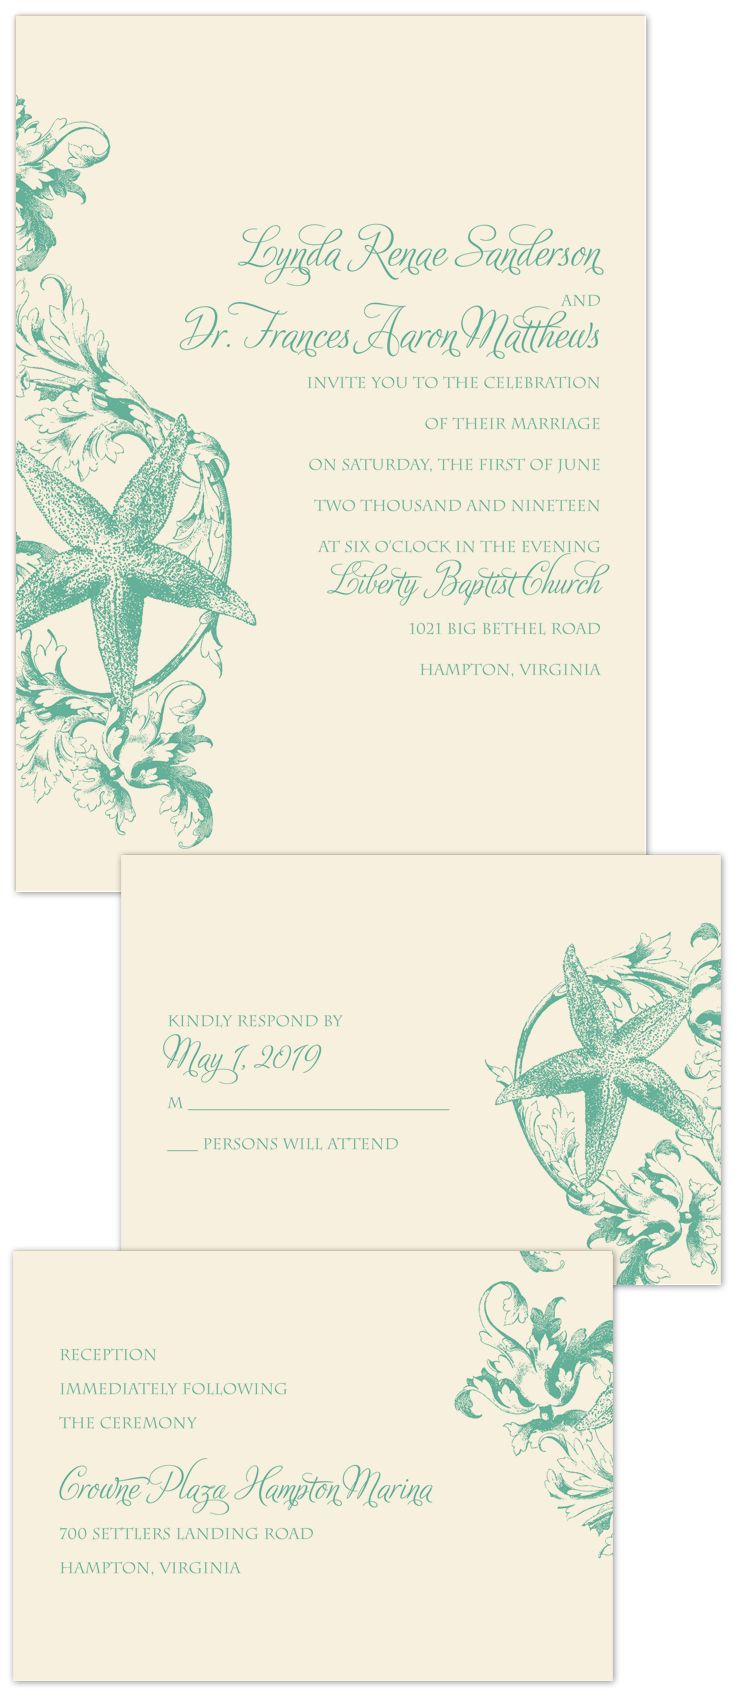 Vintage Beach Separate And Send Invitation Wedding Wedding And